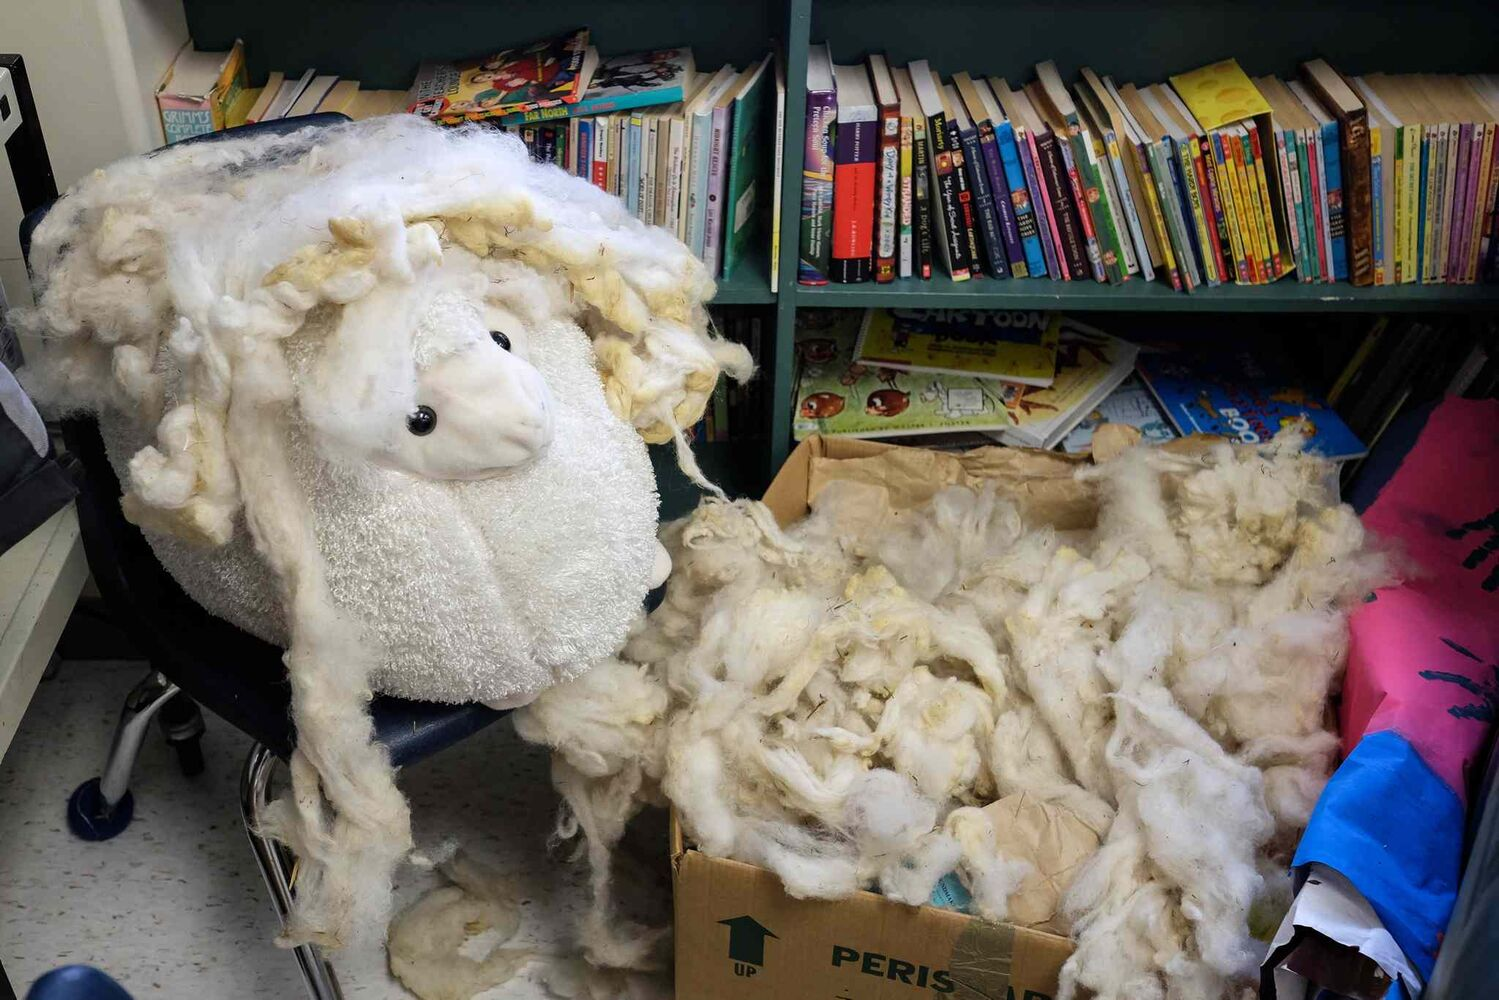 The class mascot, Shaun, sits in a corner with a box full of wool that has been washed, but still needs to be picked and carded before being spun into yarn.  (MIKE DEAL / WINNIPEG FREE PRESS)